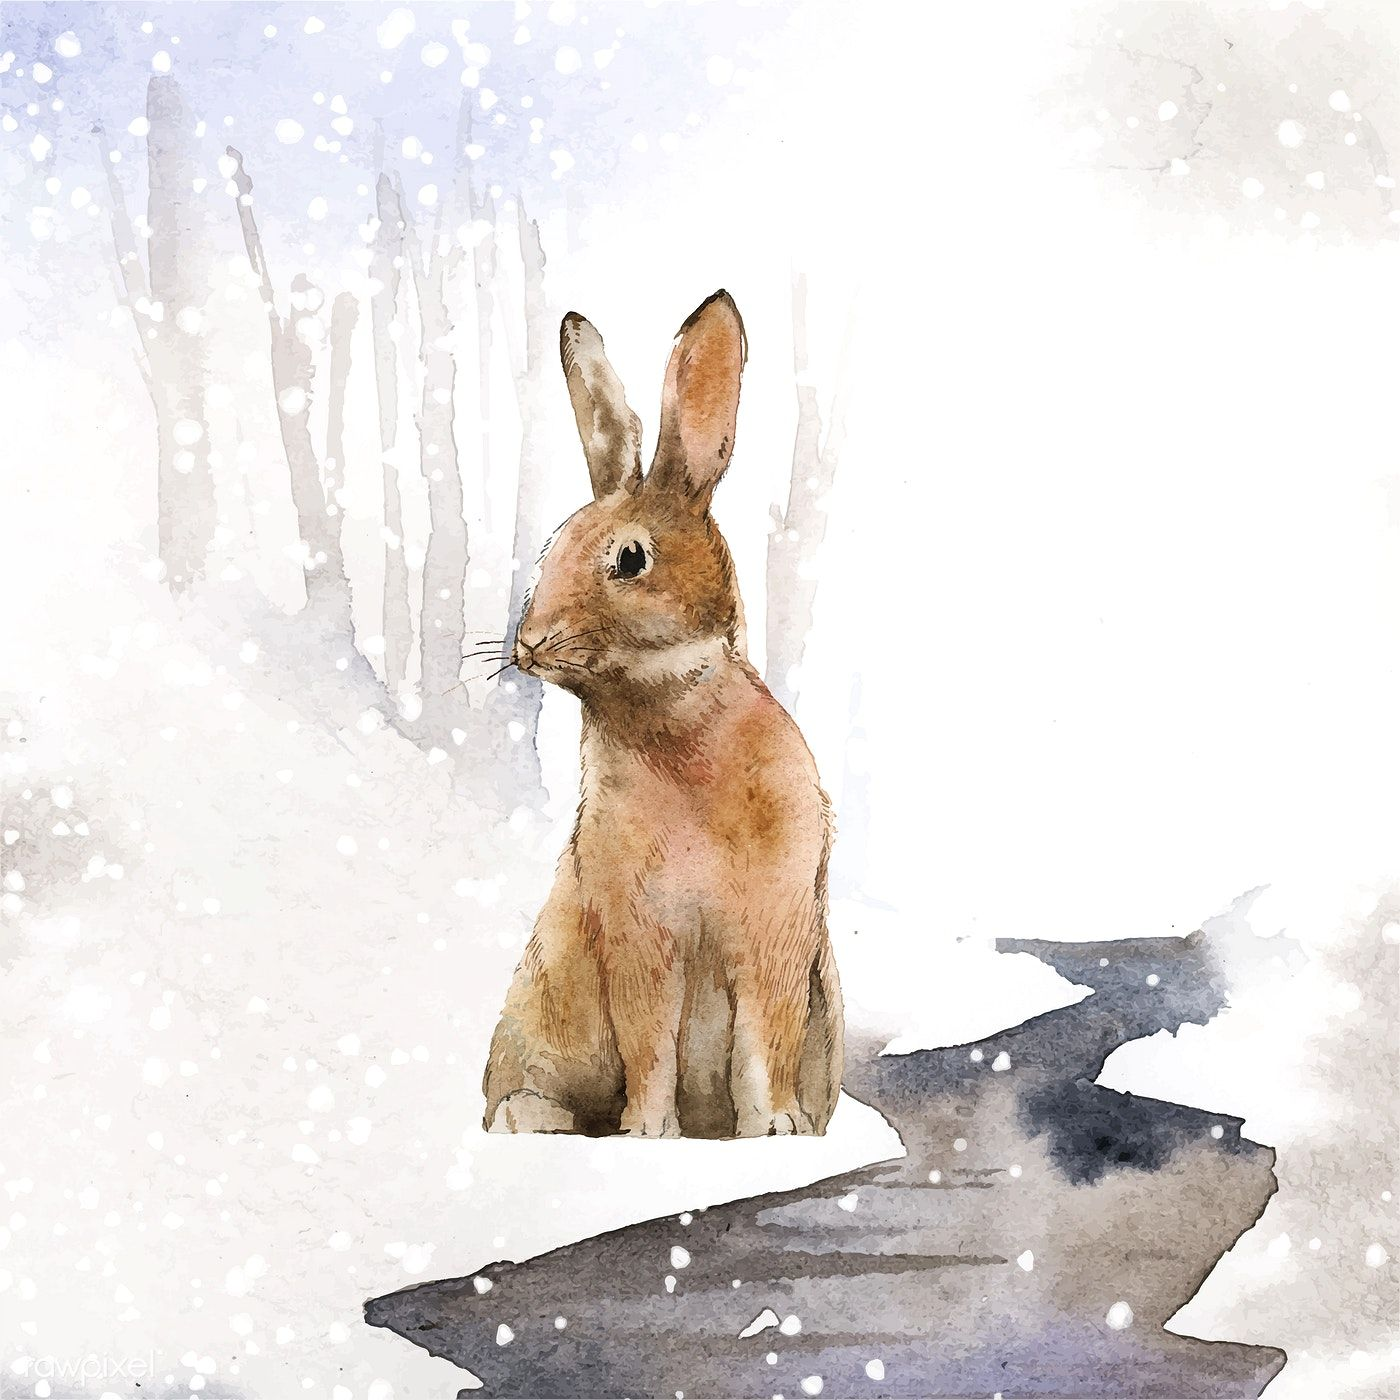 Wild hare in a winter wonderland painted by watercolor